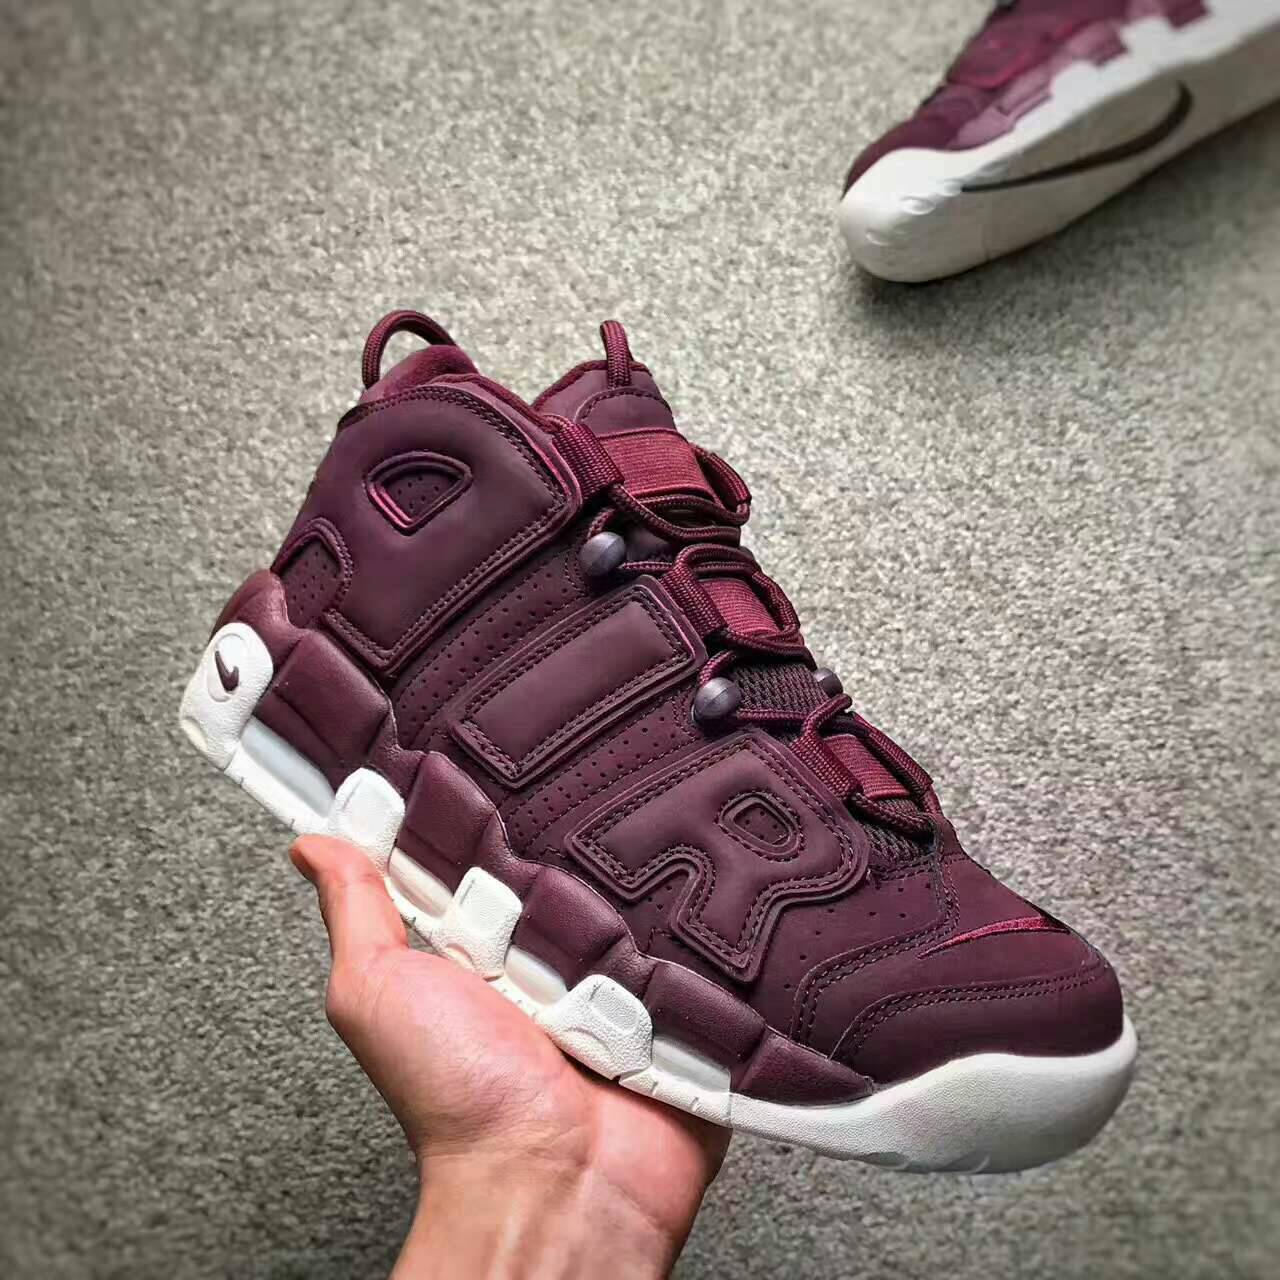 Nike Air More Uptempo Pippen 大AIR籃球鞋 男款